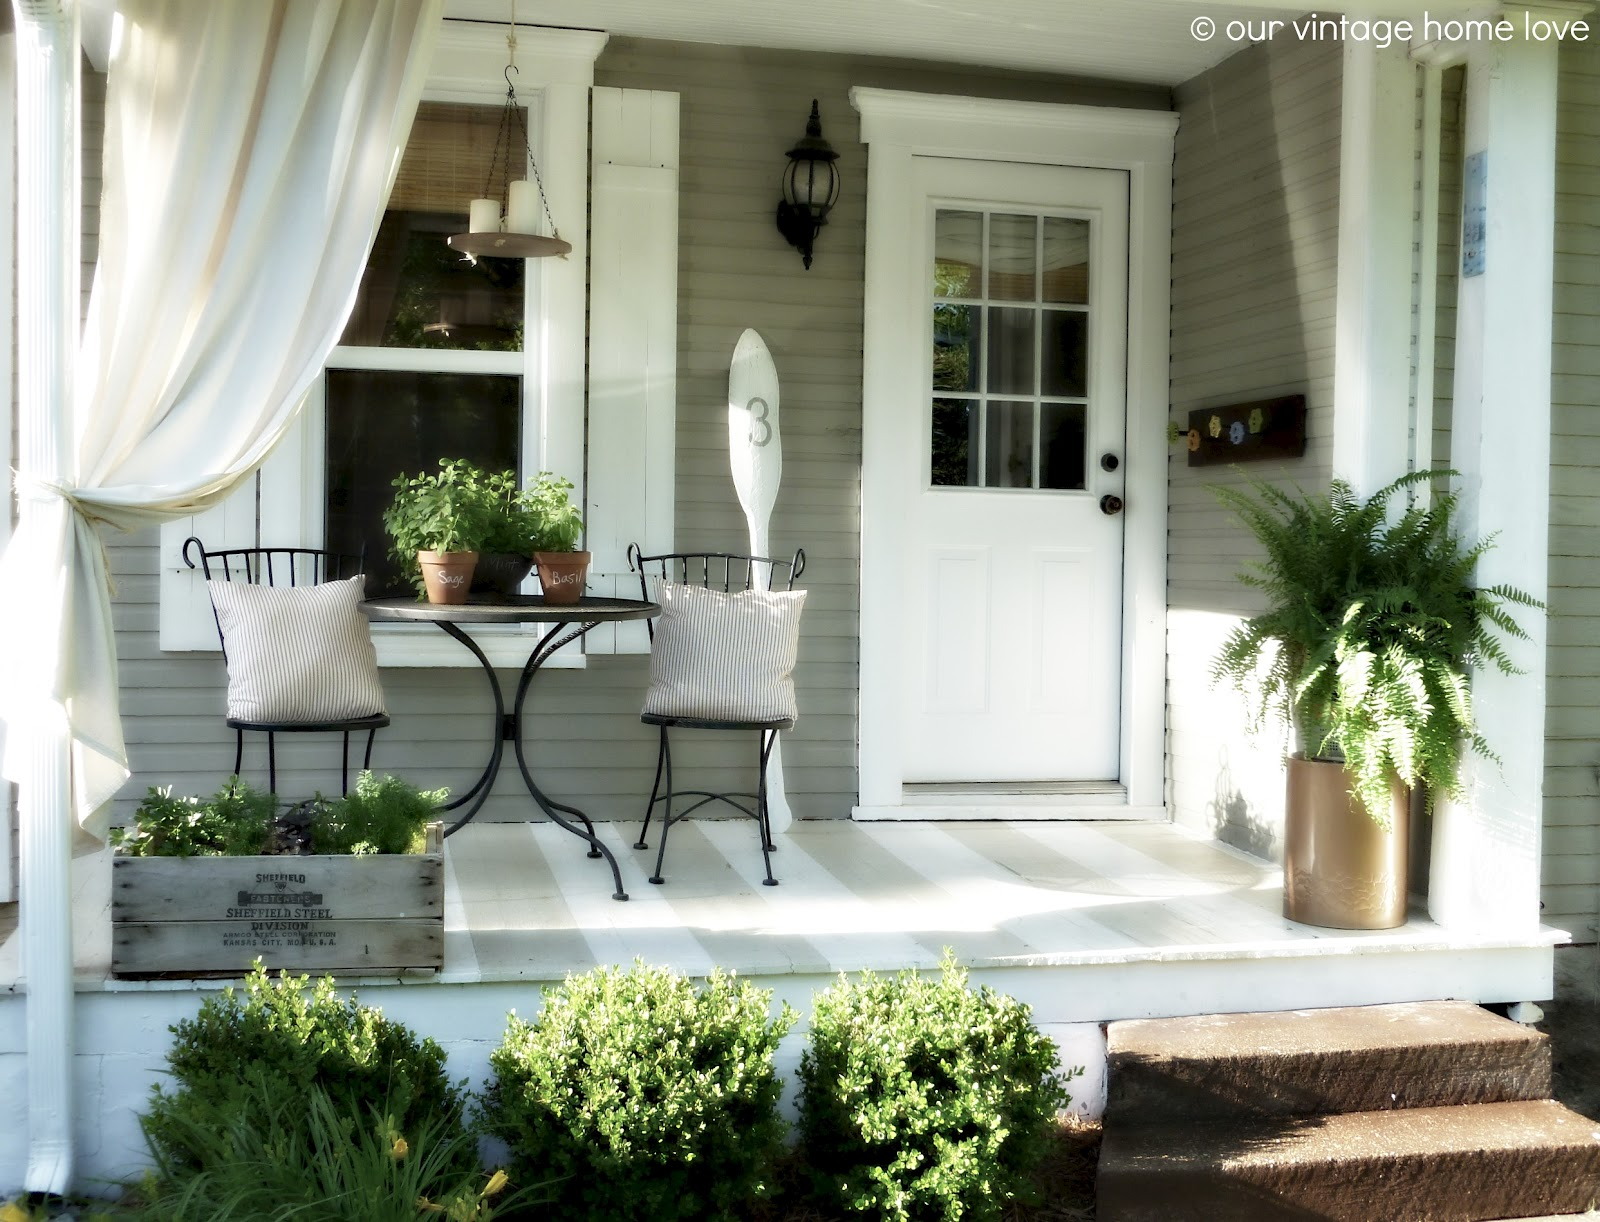 Vintage home love back side porch ideas for summer and an for Patio porch designs